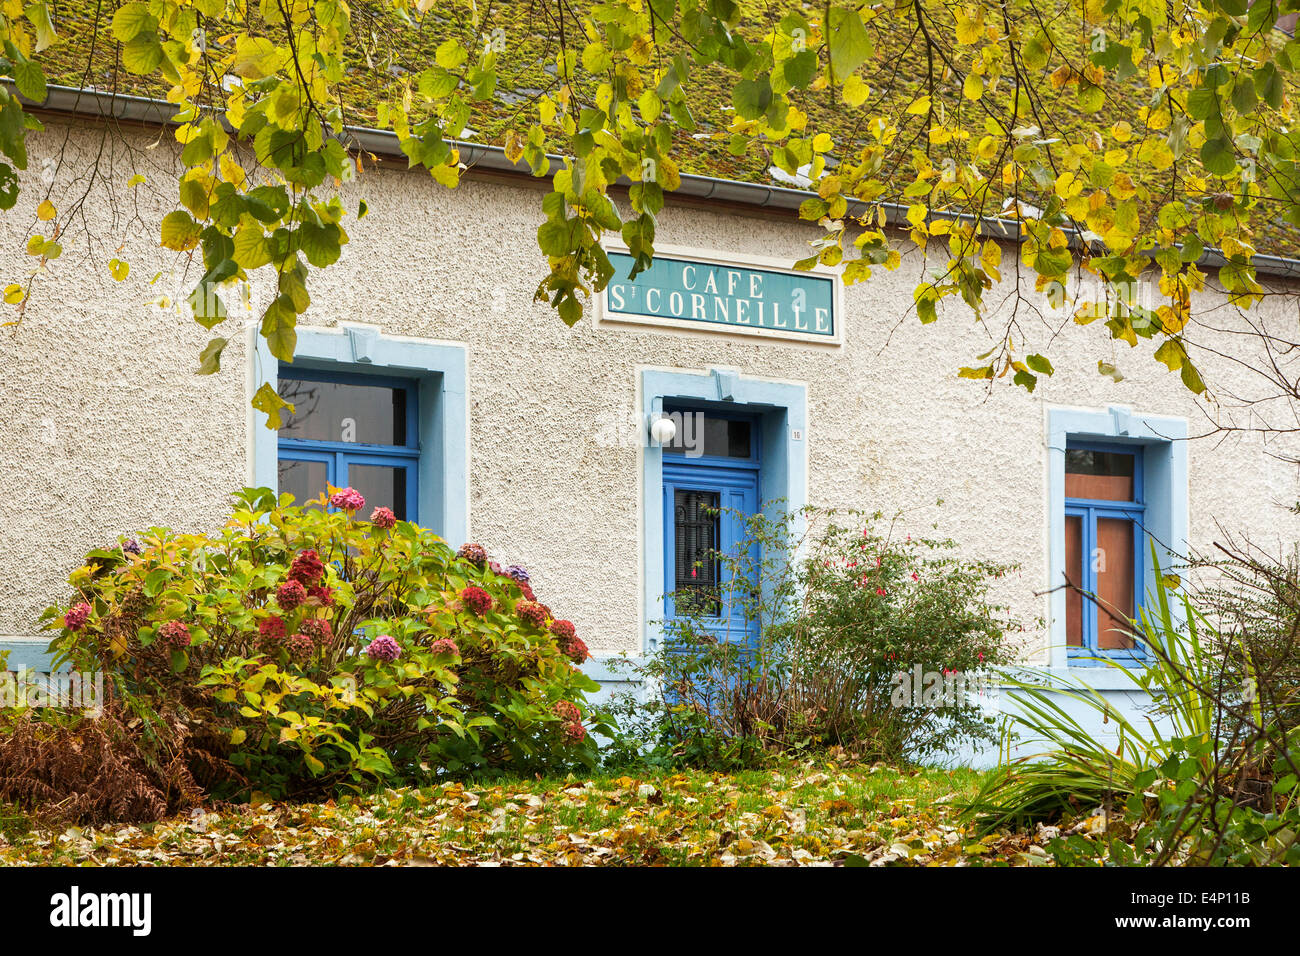 The café St Corneille at Forge-Philippe, Momignies, Hainaut, Belgium - Stock Image